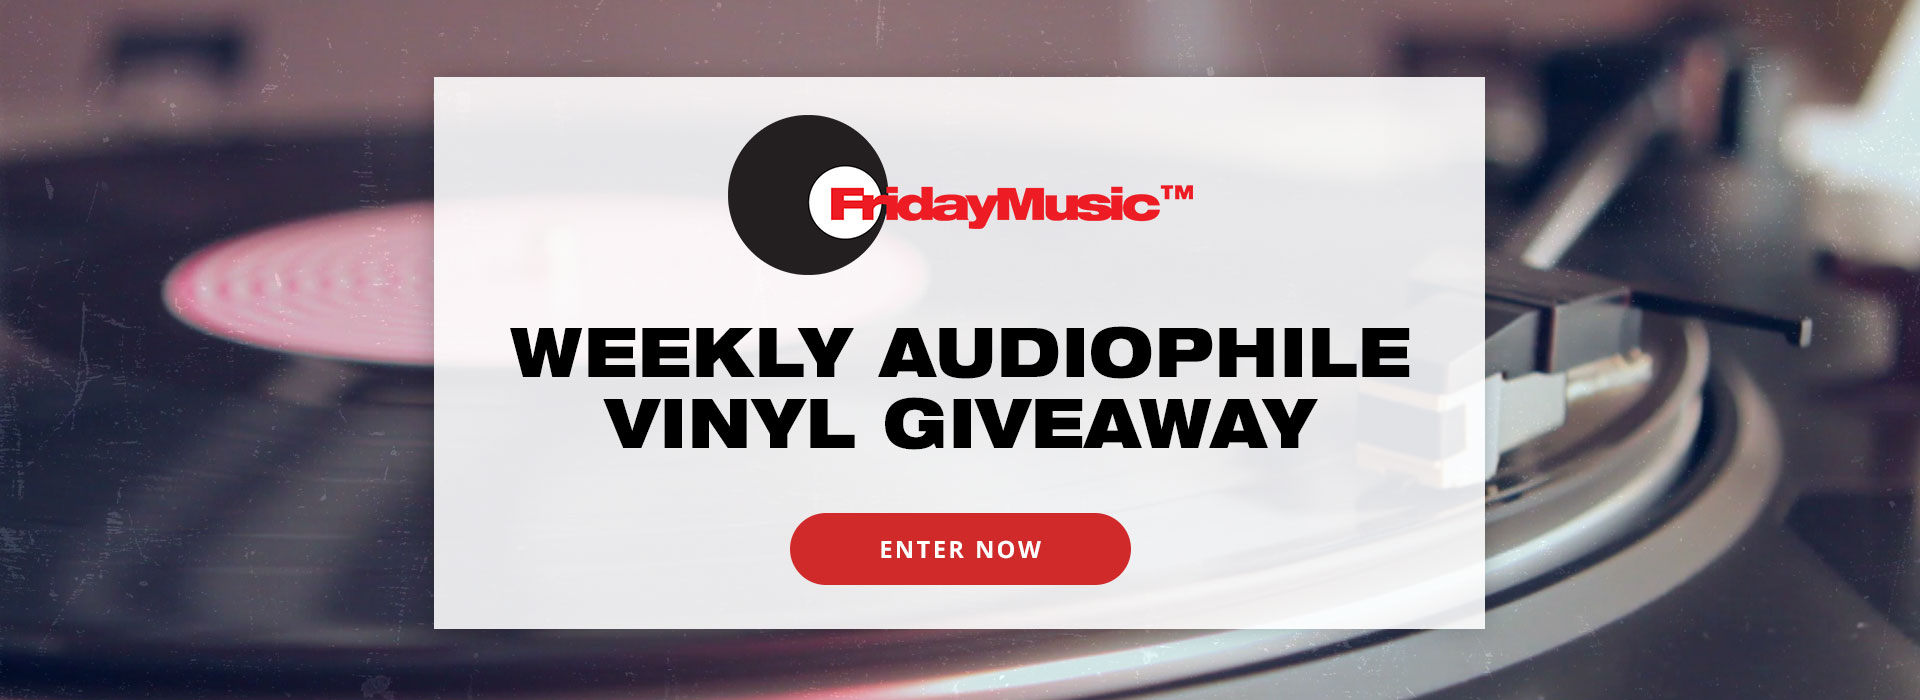 Friday Music Weekly Audiophile Vinyl Giveaway! Click Here to Enter Now!